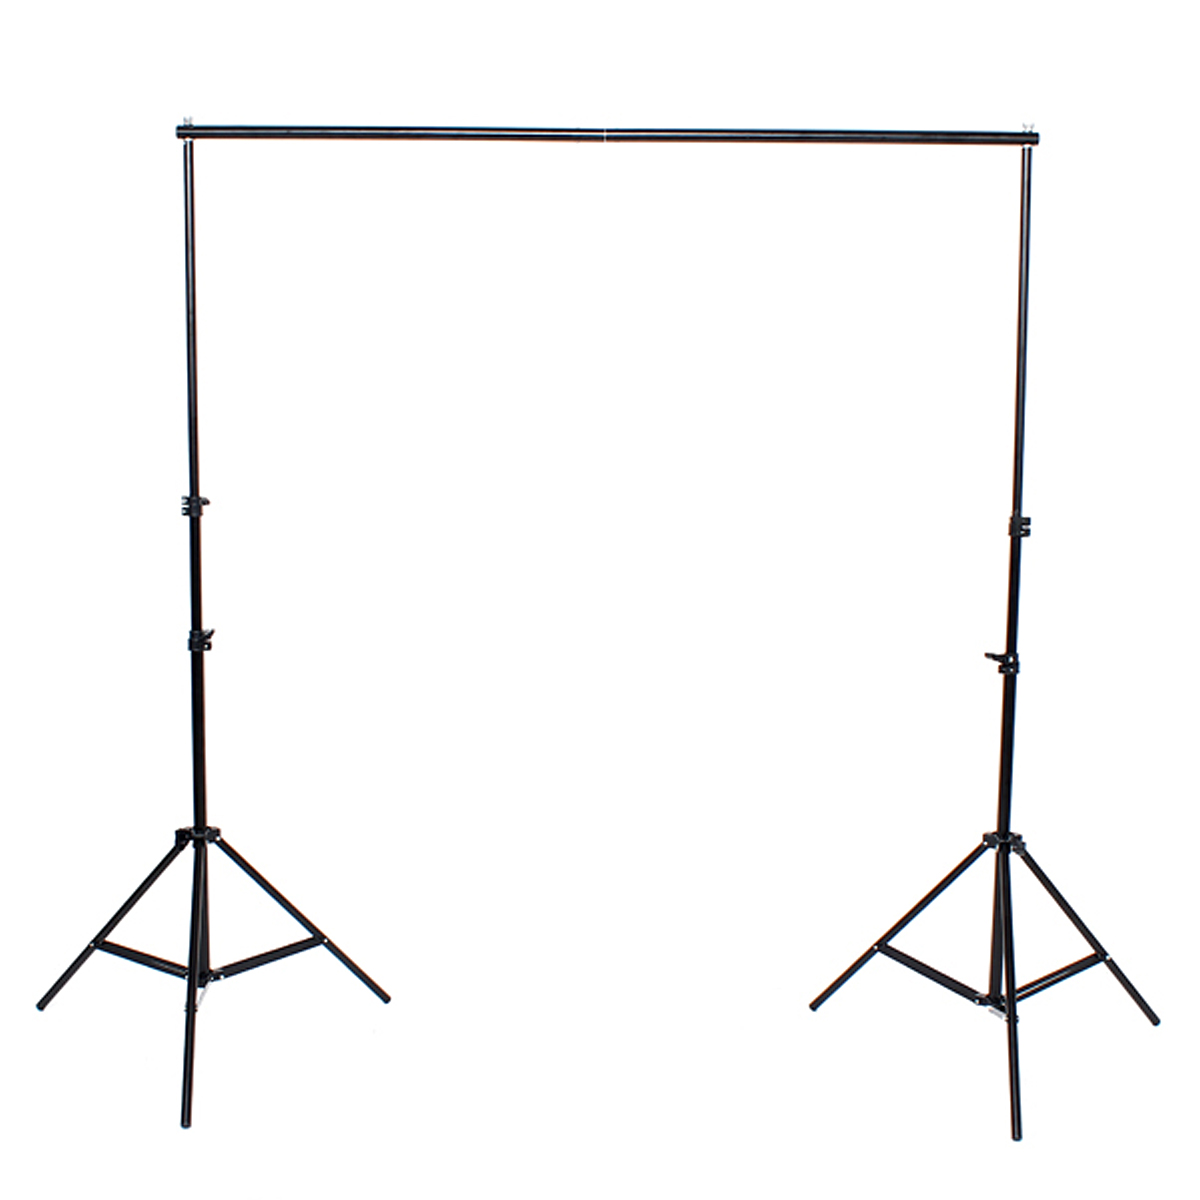 Freya 2x2m 6.5FT Professinal Photography Background Backdrops Support System Stands Studio For Photo Studio Accessories easter day basket branch bunny photo studio background easter photography backdrops page 8